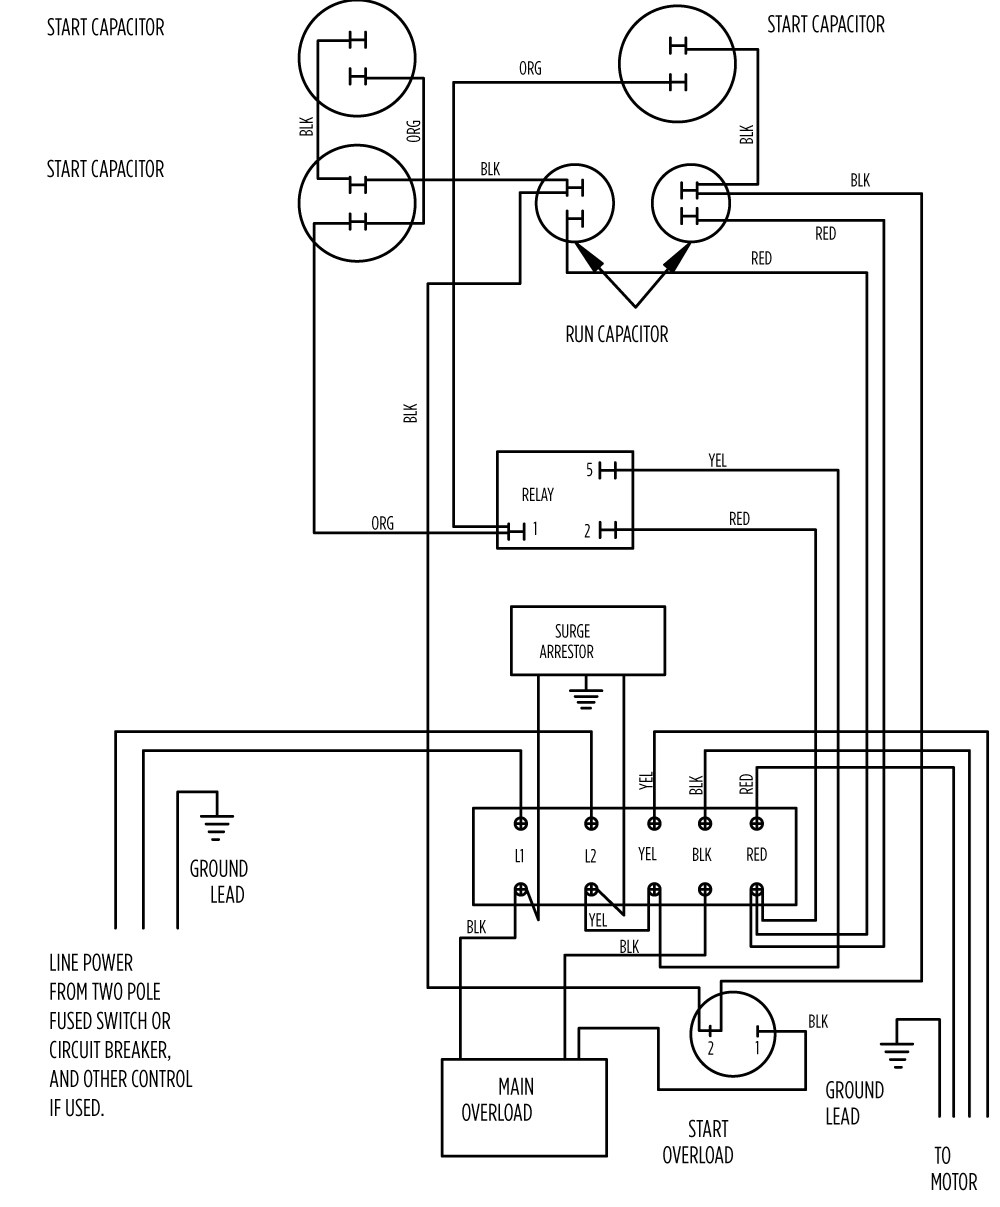 10 hp standard 282 202 9210 or 282 202 9230_aim gallery?format=jpg&quality=80 aim manual page 57 single phase motors and controls motor Ford Model A Wiring Diagram at gsmportal.co